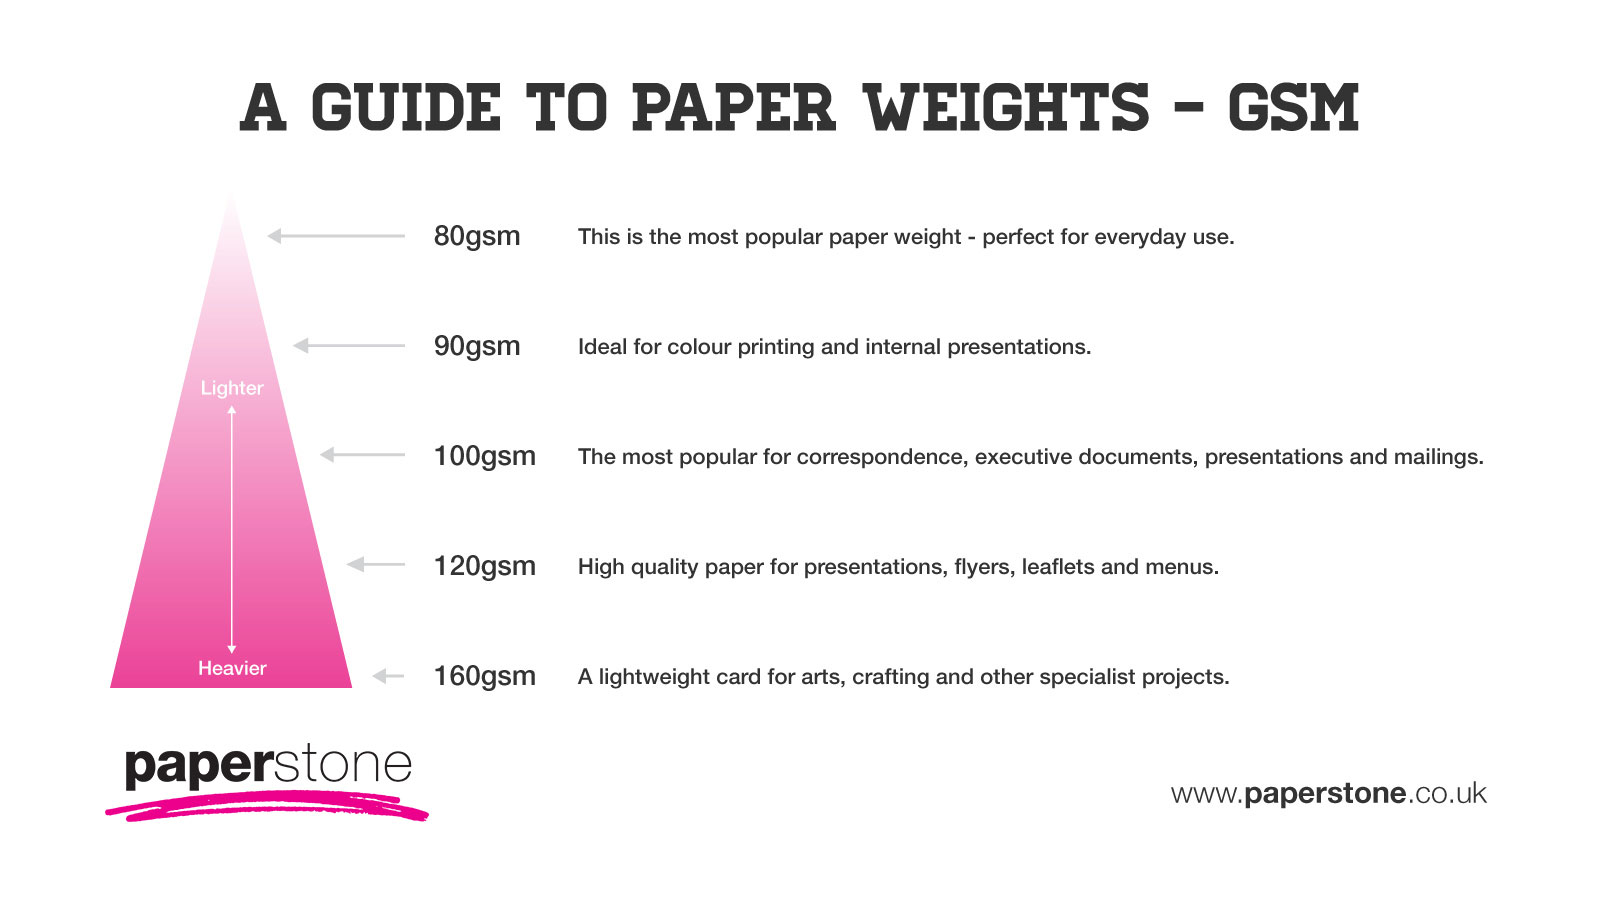 Buy paper size and weights guide paperstone paper weights in gsm nvjuhfo Choice Image